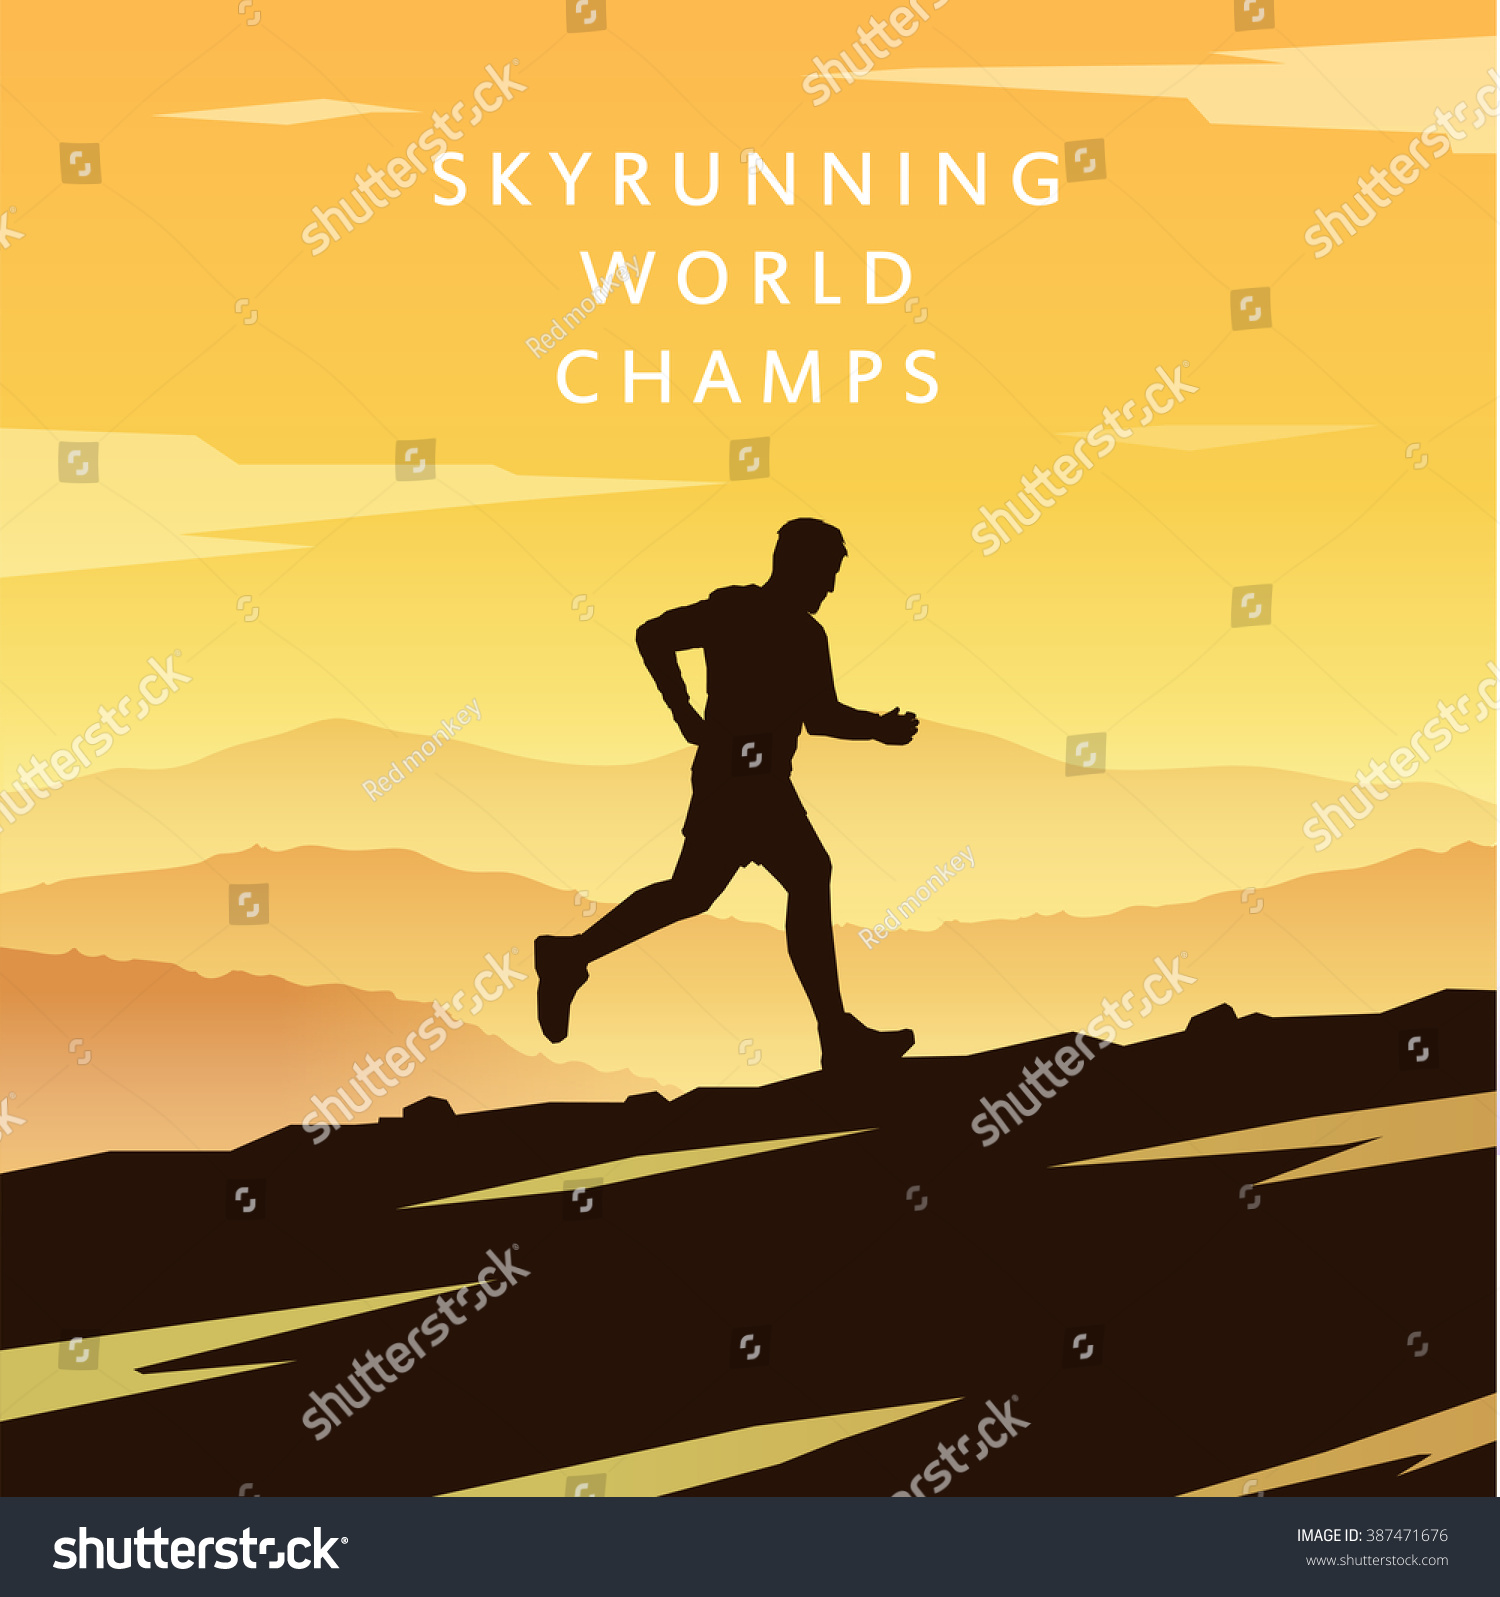 Runner silhouette Skyrunning poster Extreme sports Vector Mountain landscape Outdoor sports Hiking #1